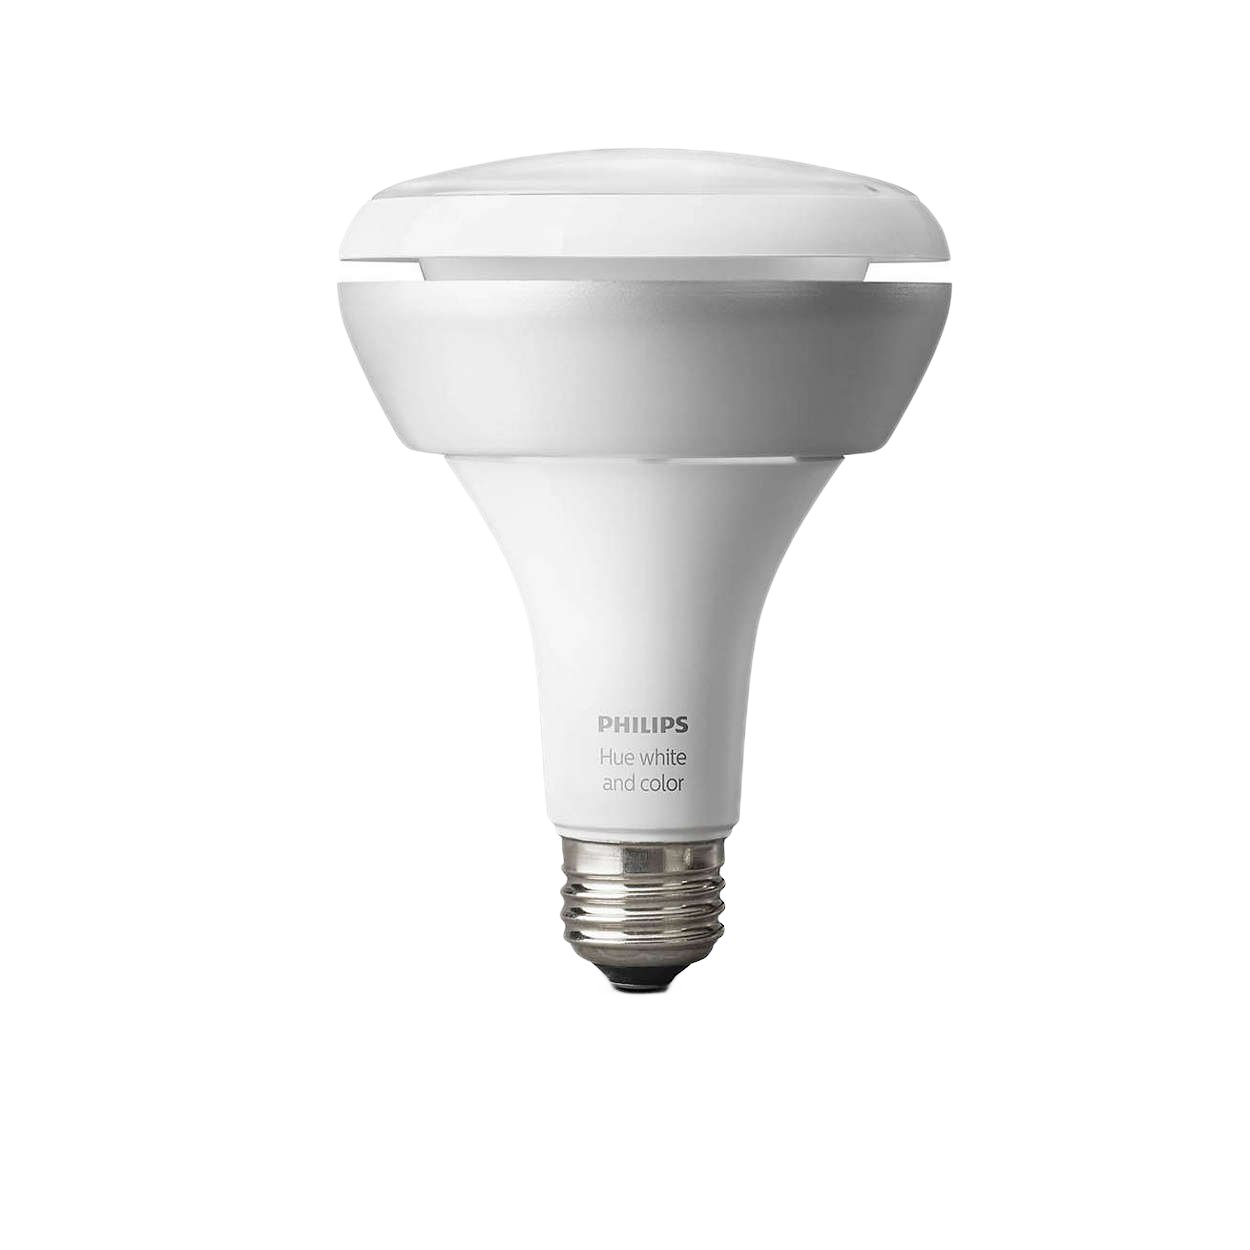 Philips 456665 Hue White & Color Ambiance BR30 Extension Light Bulb, Works with Alexa